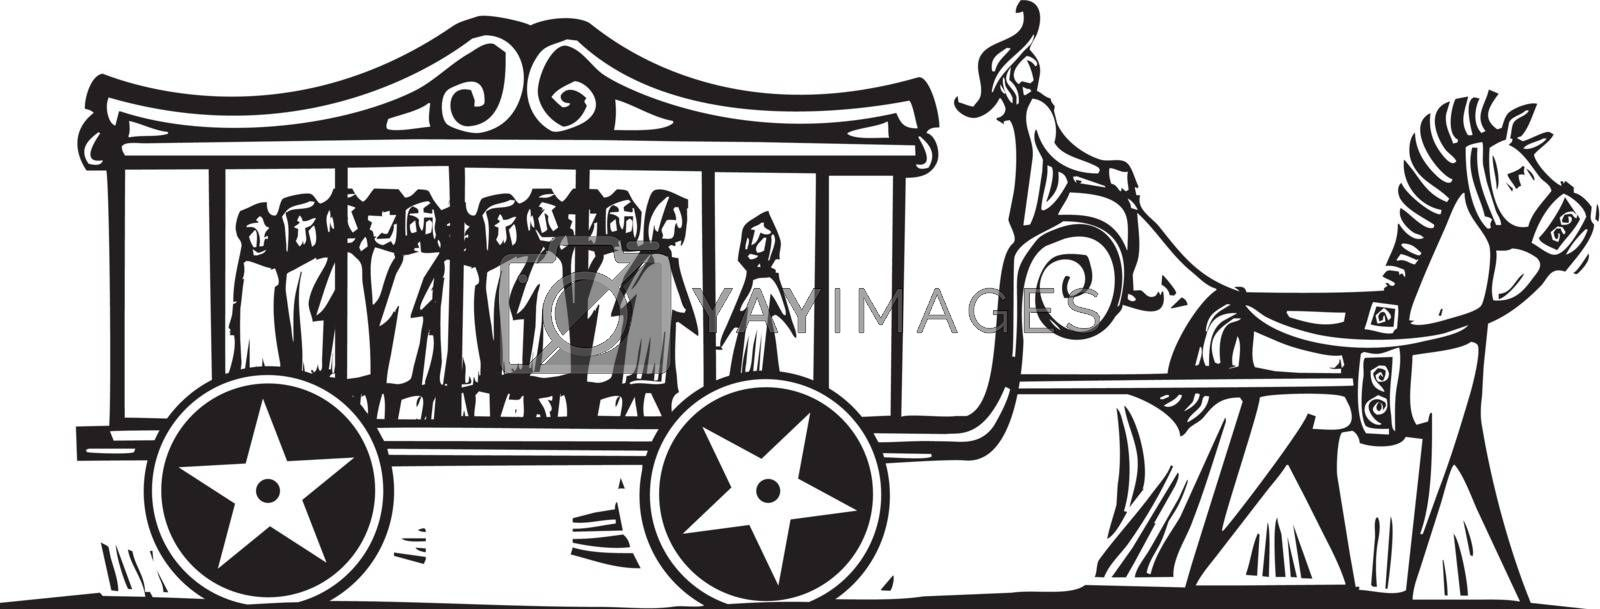 Woodcut style image of captured Children on display in a carnival carriage.